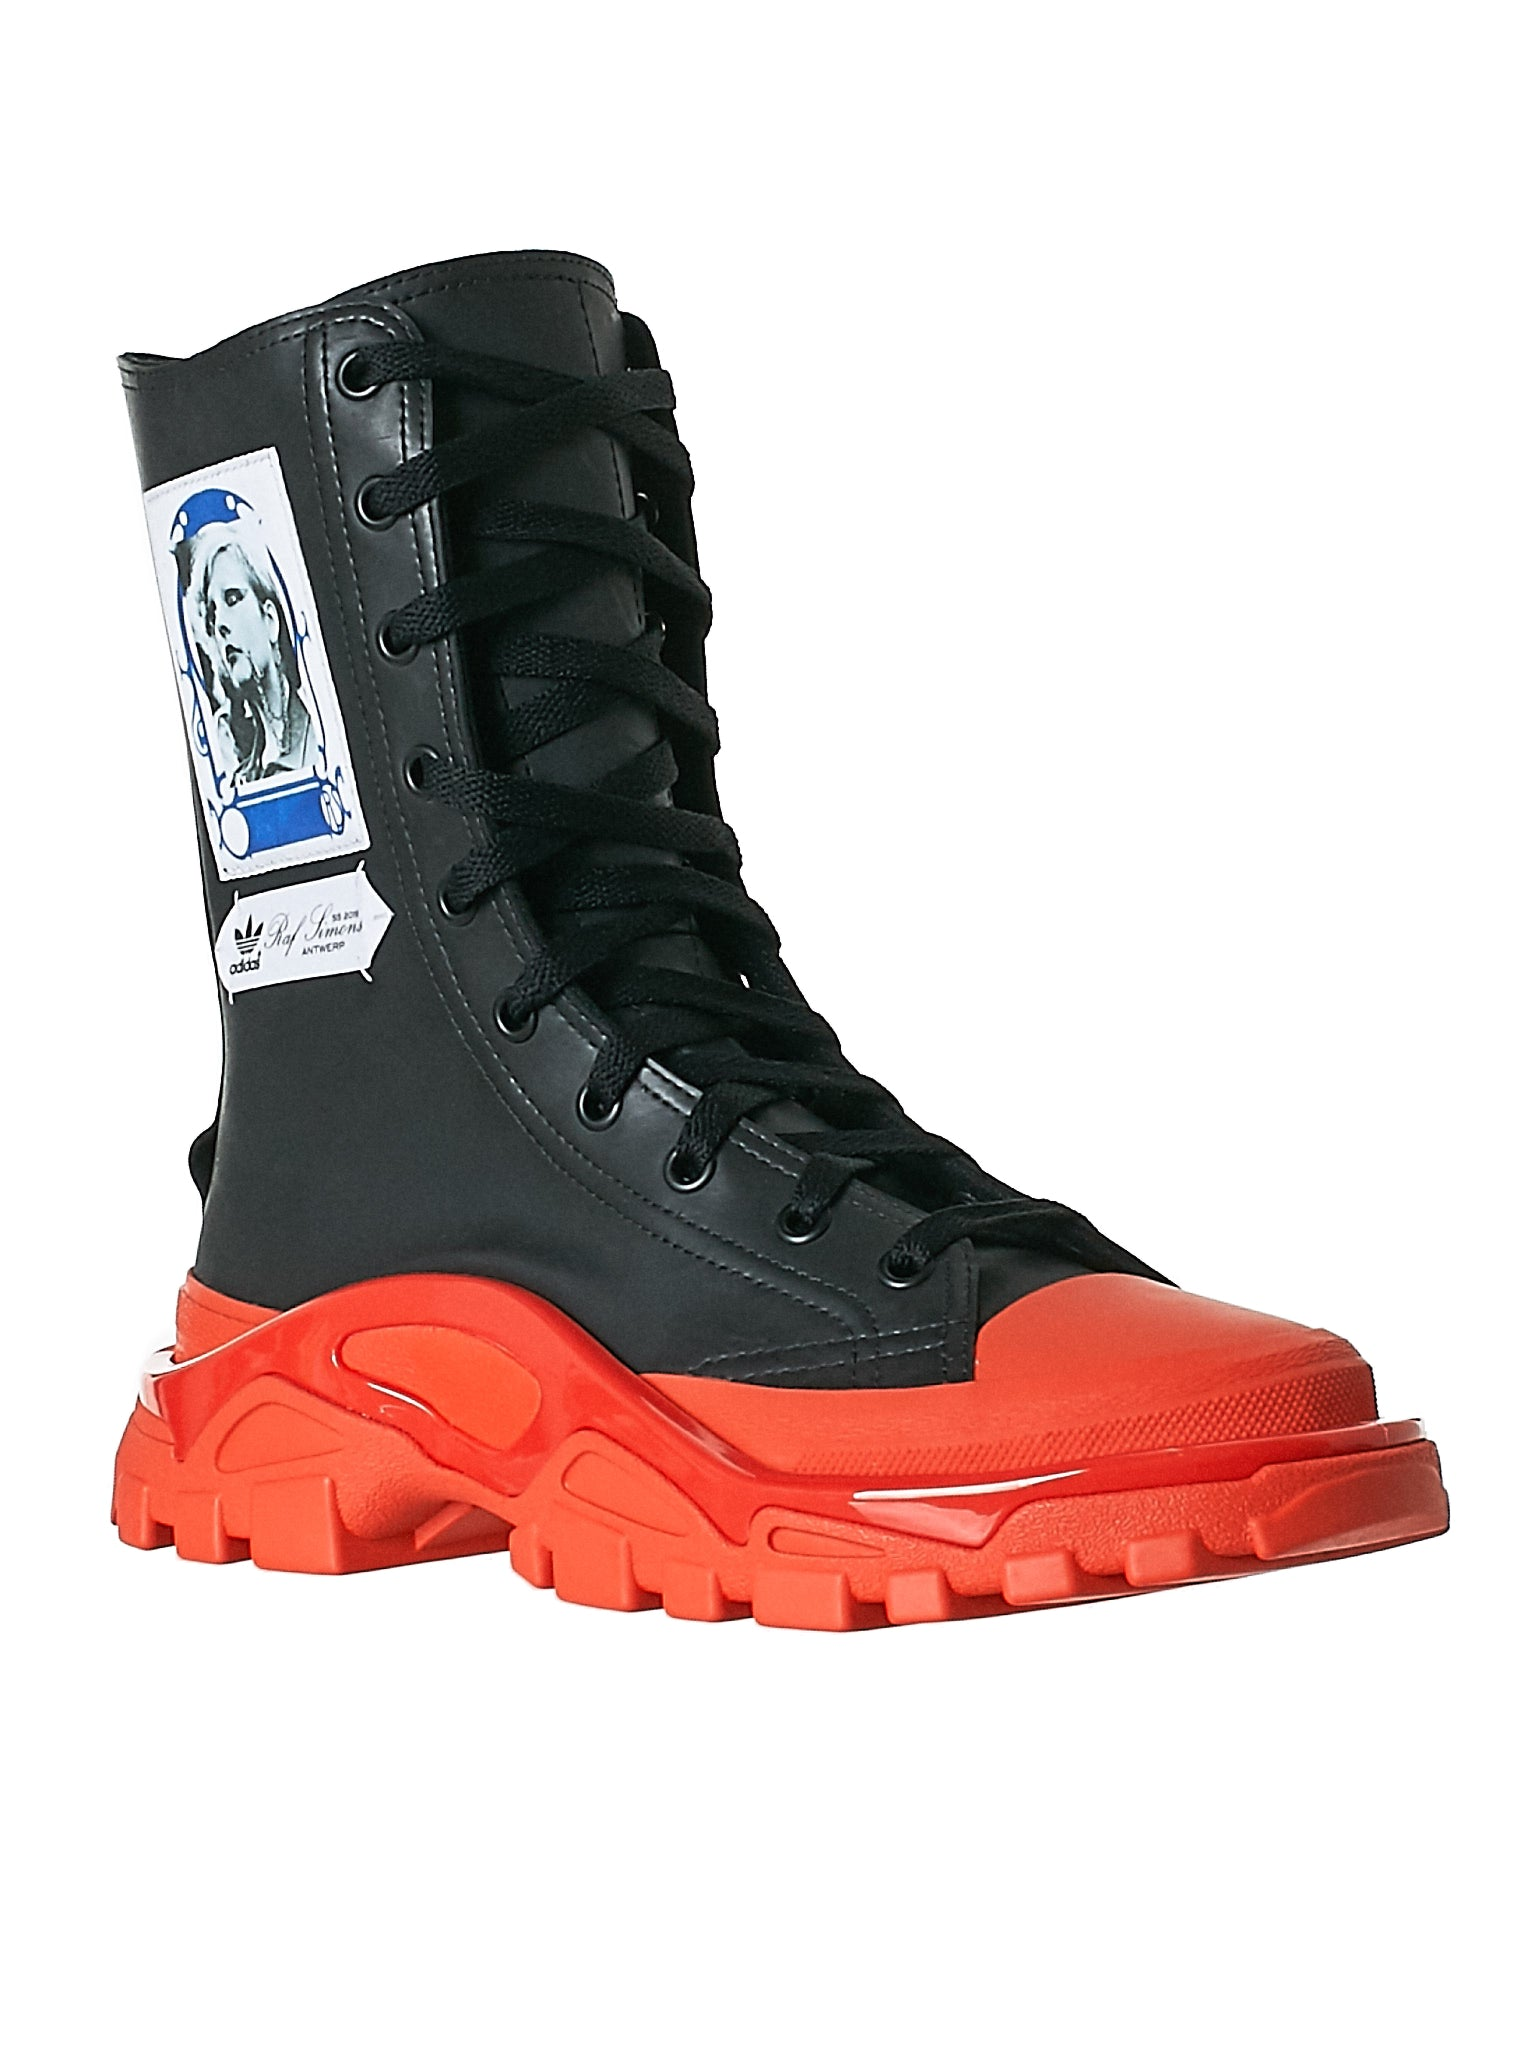 Adidas Raf Simons Black Boot - Hlorenzo Side